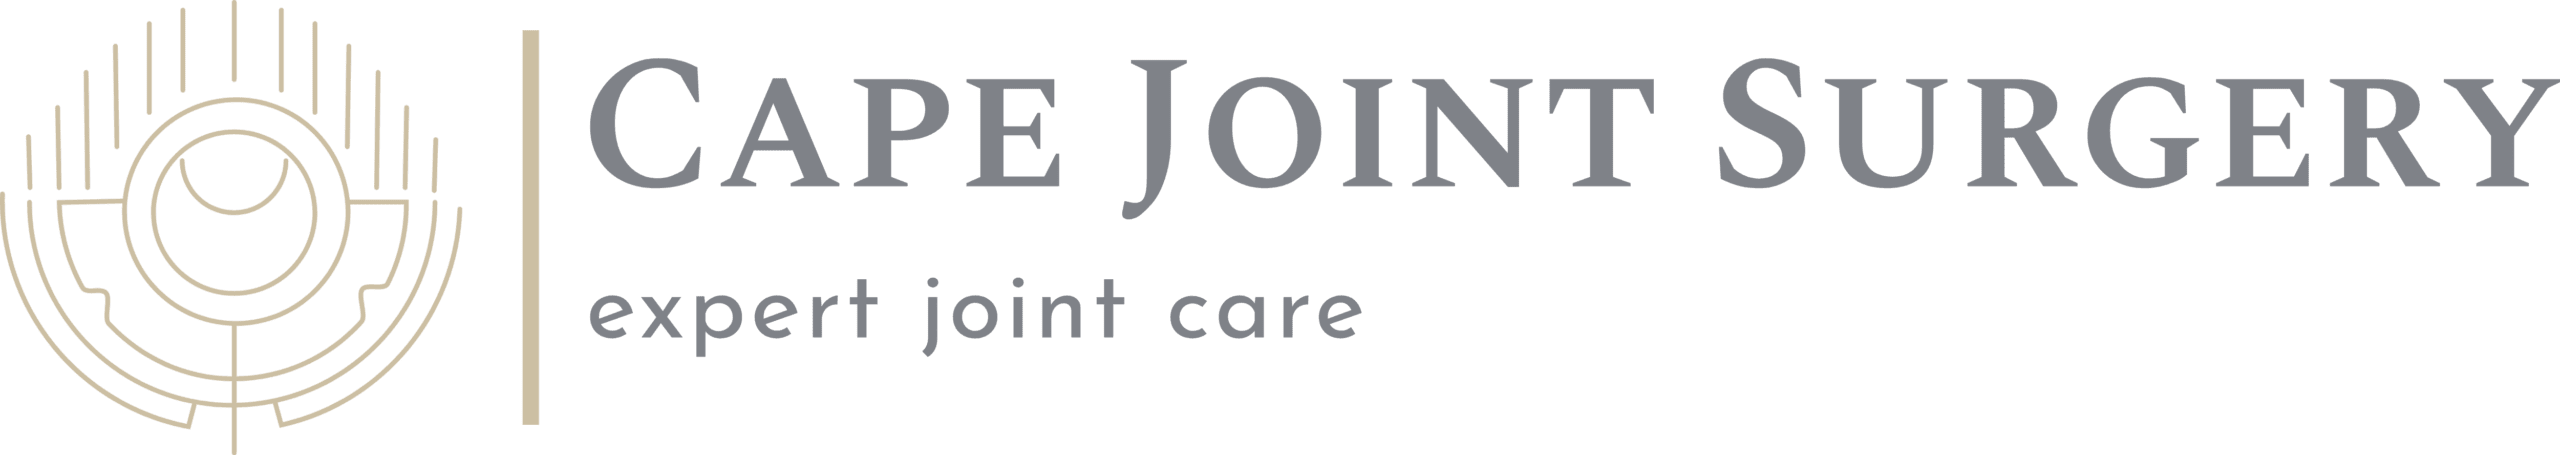 Cape Joint Surgery